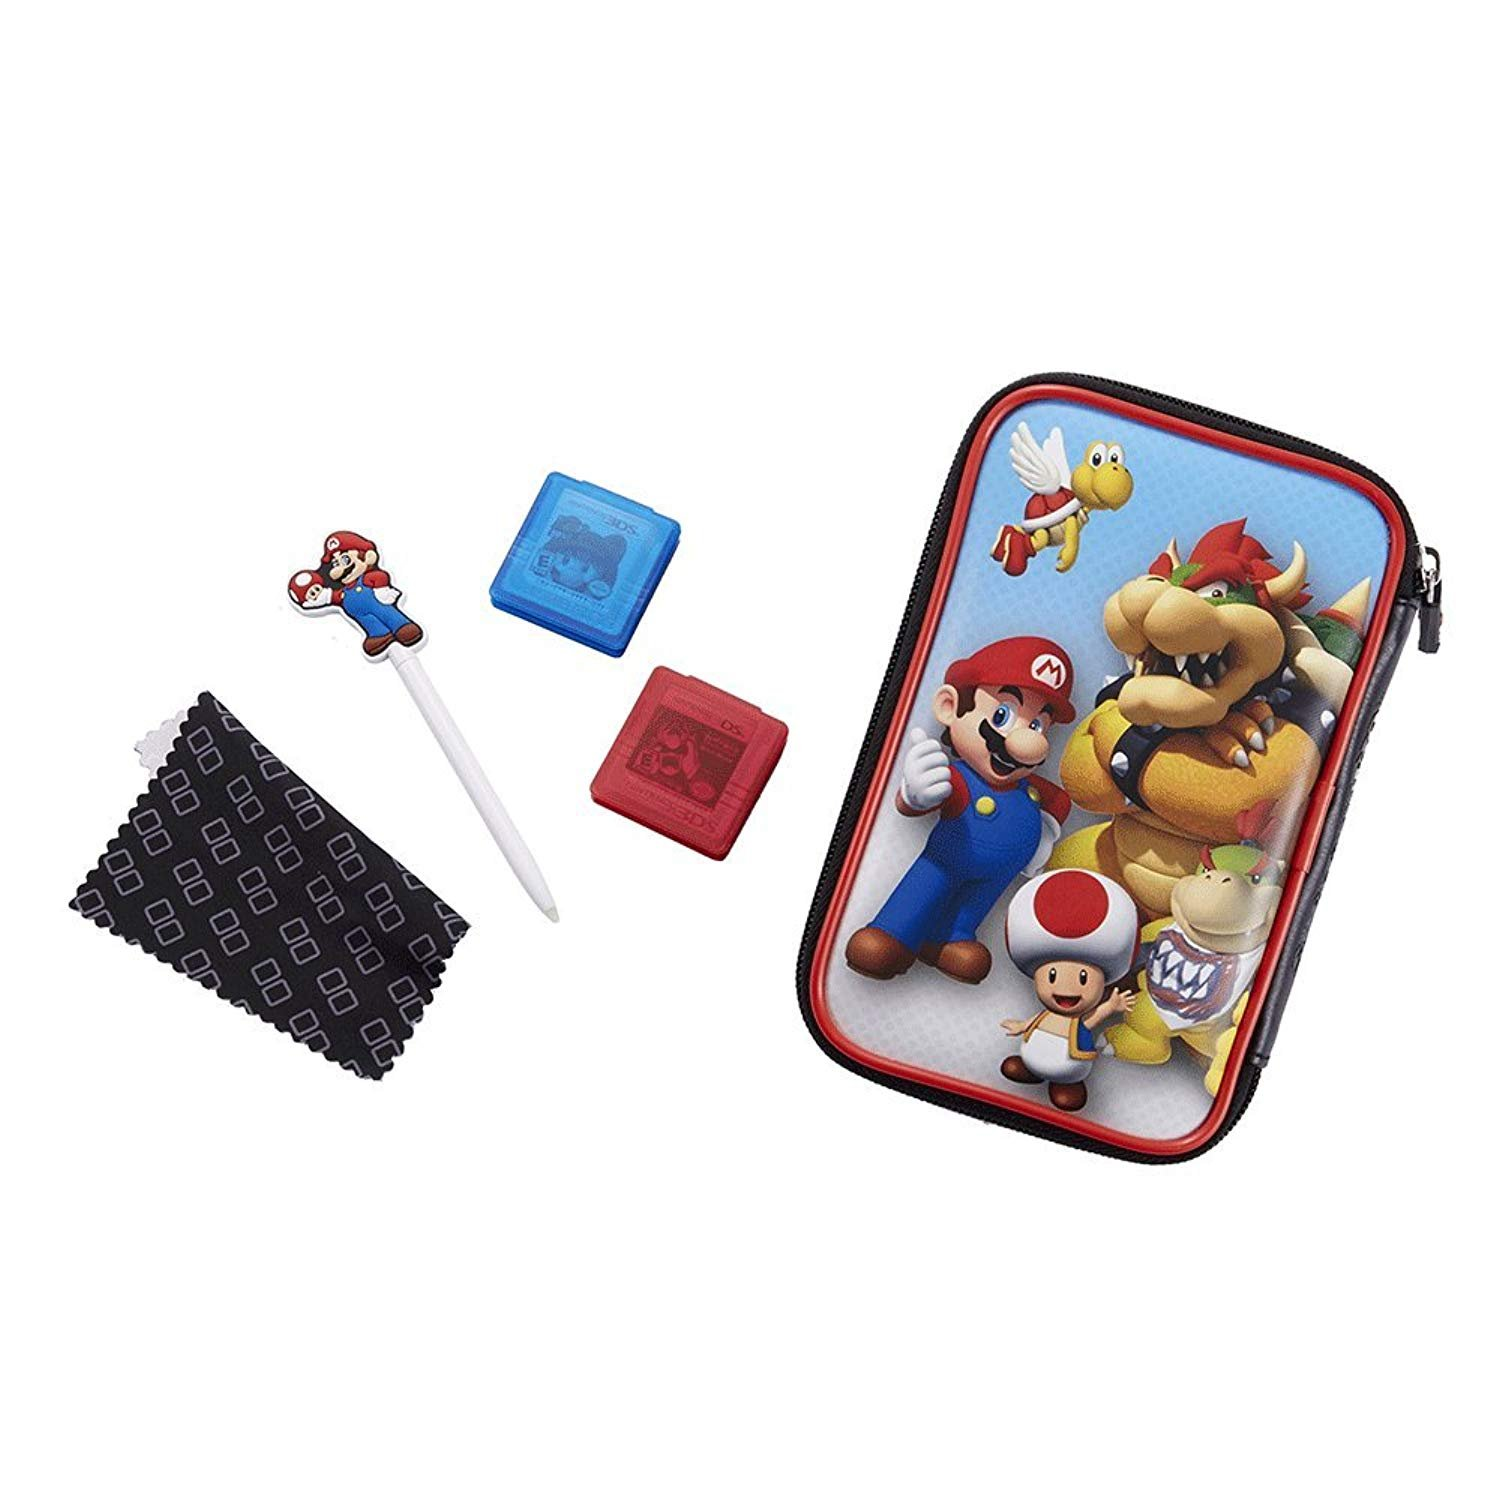 """Official Nintendo New 3DS XL / 3DS XL - Accessory Set """"Official Essential Mario Pack"""" 4 Motifs For selection Protects 3DS und Games - Browser, Set"""